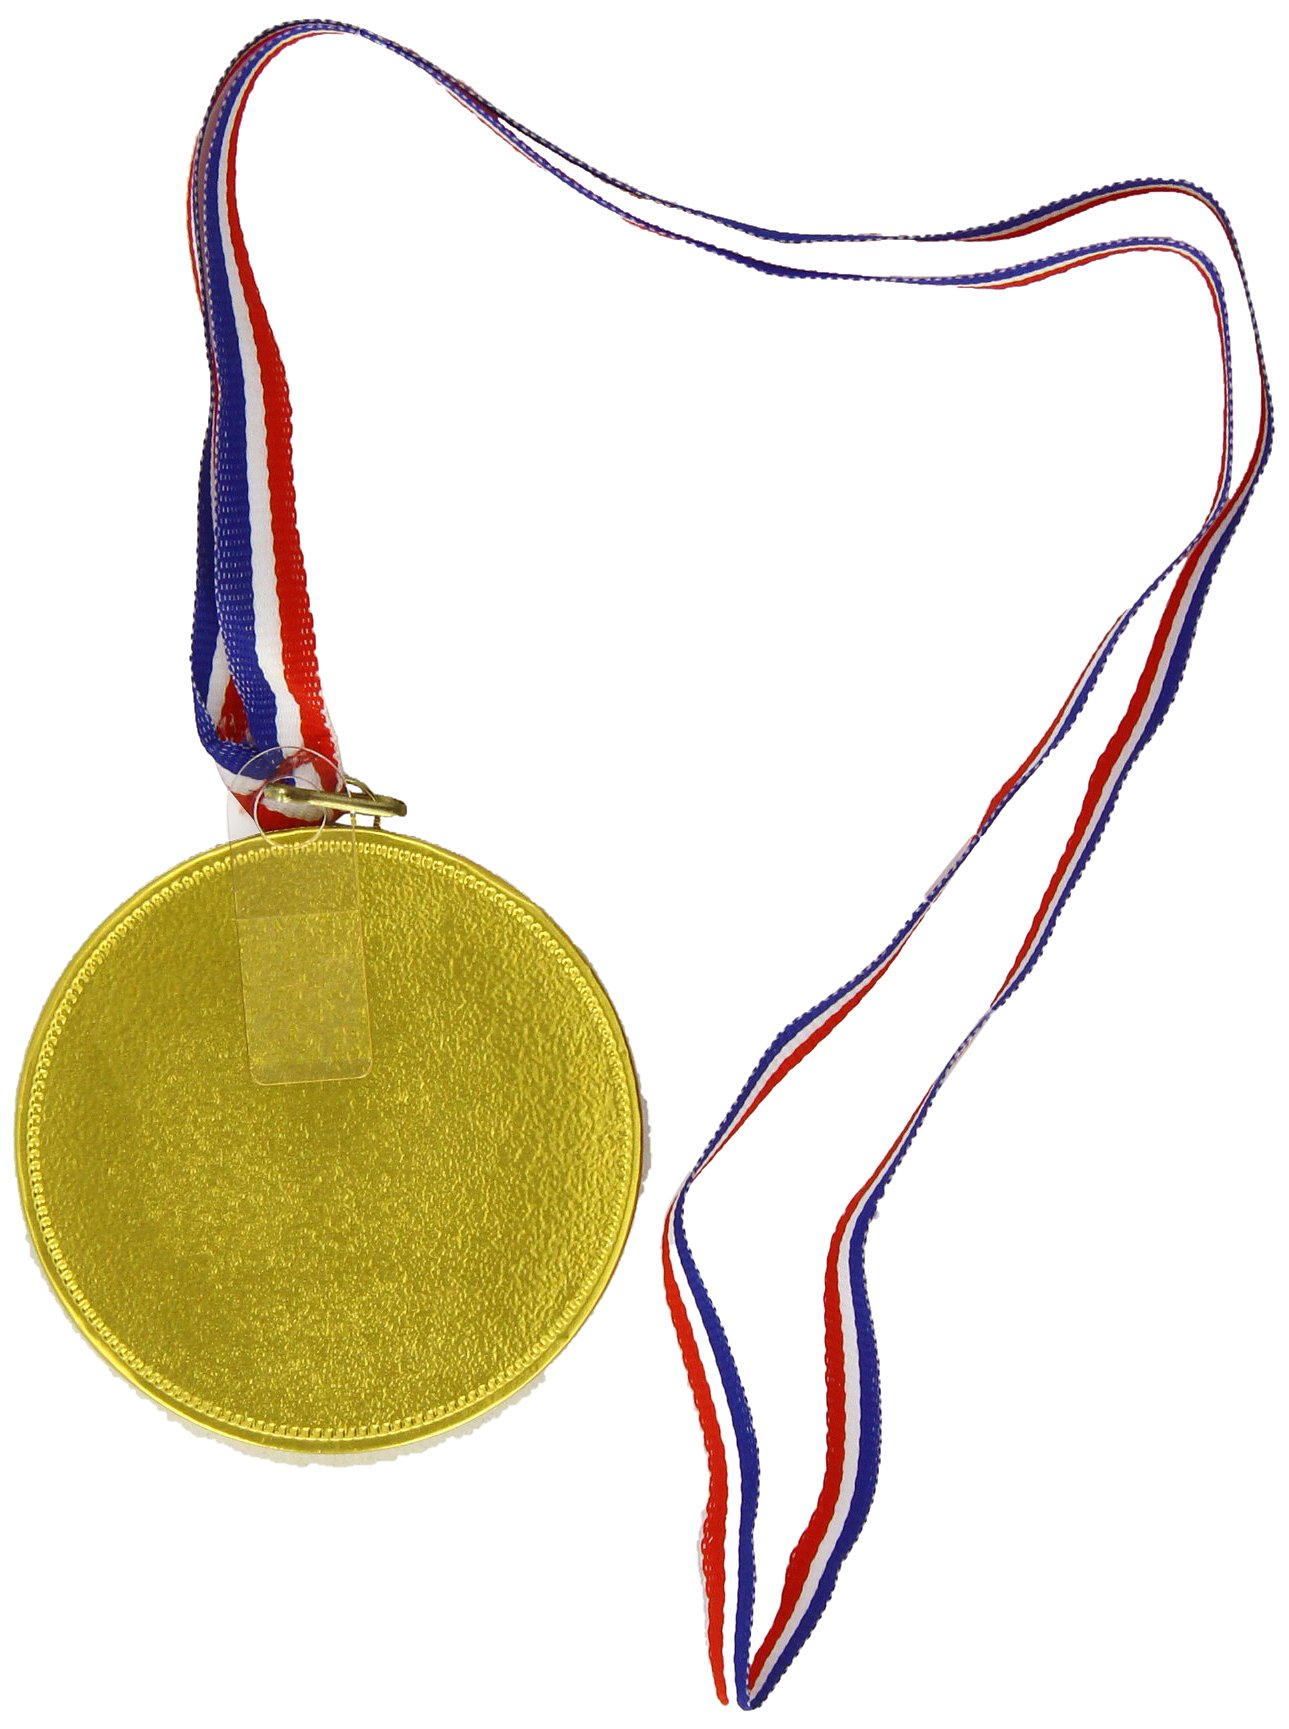 Milk Chocolate Foiled Medals (Pack of 10) by GroceryLand (Image #2)